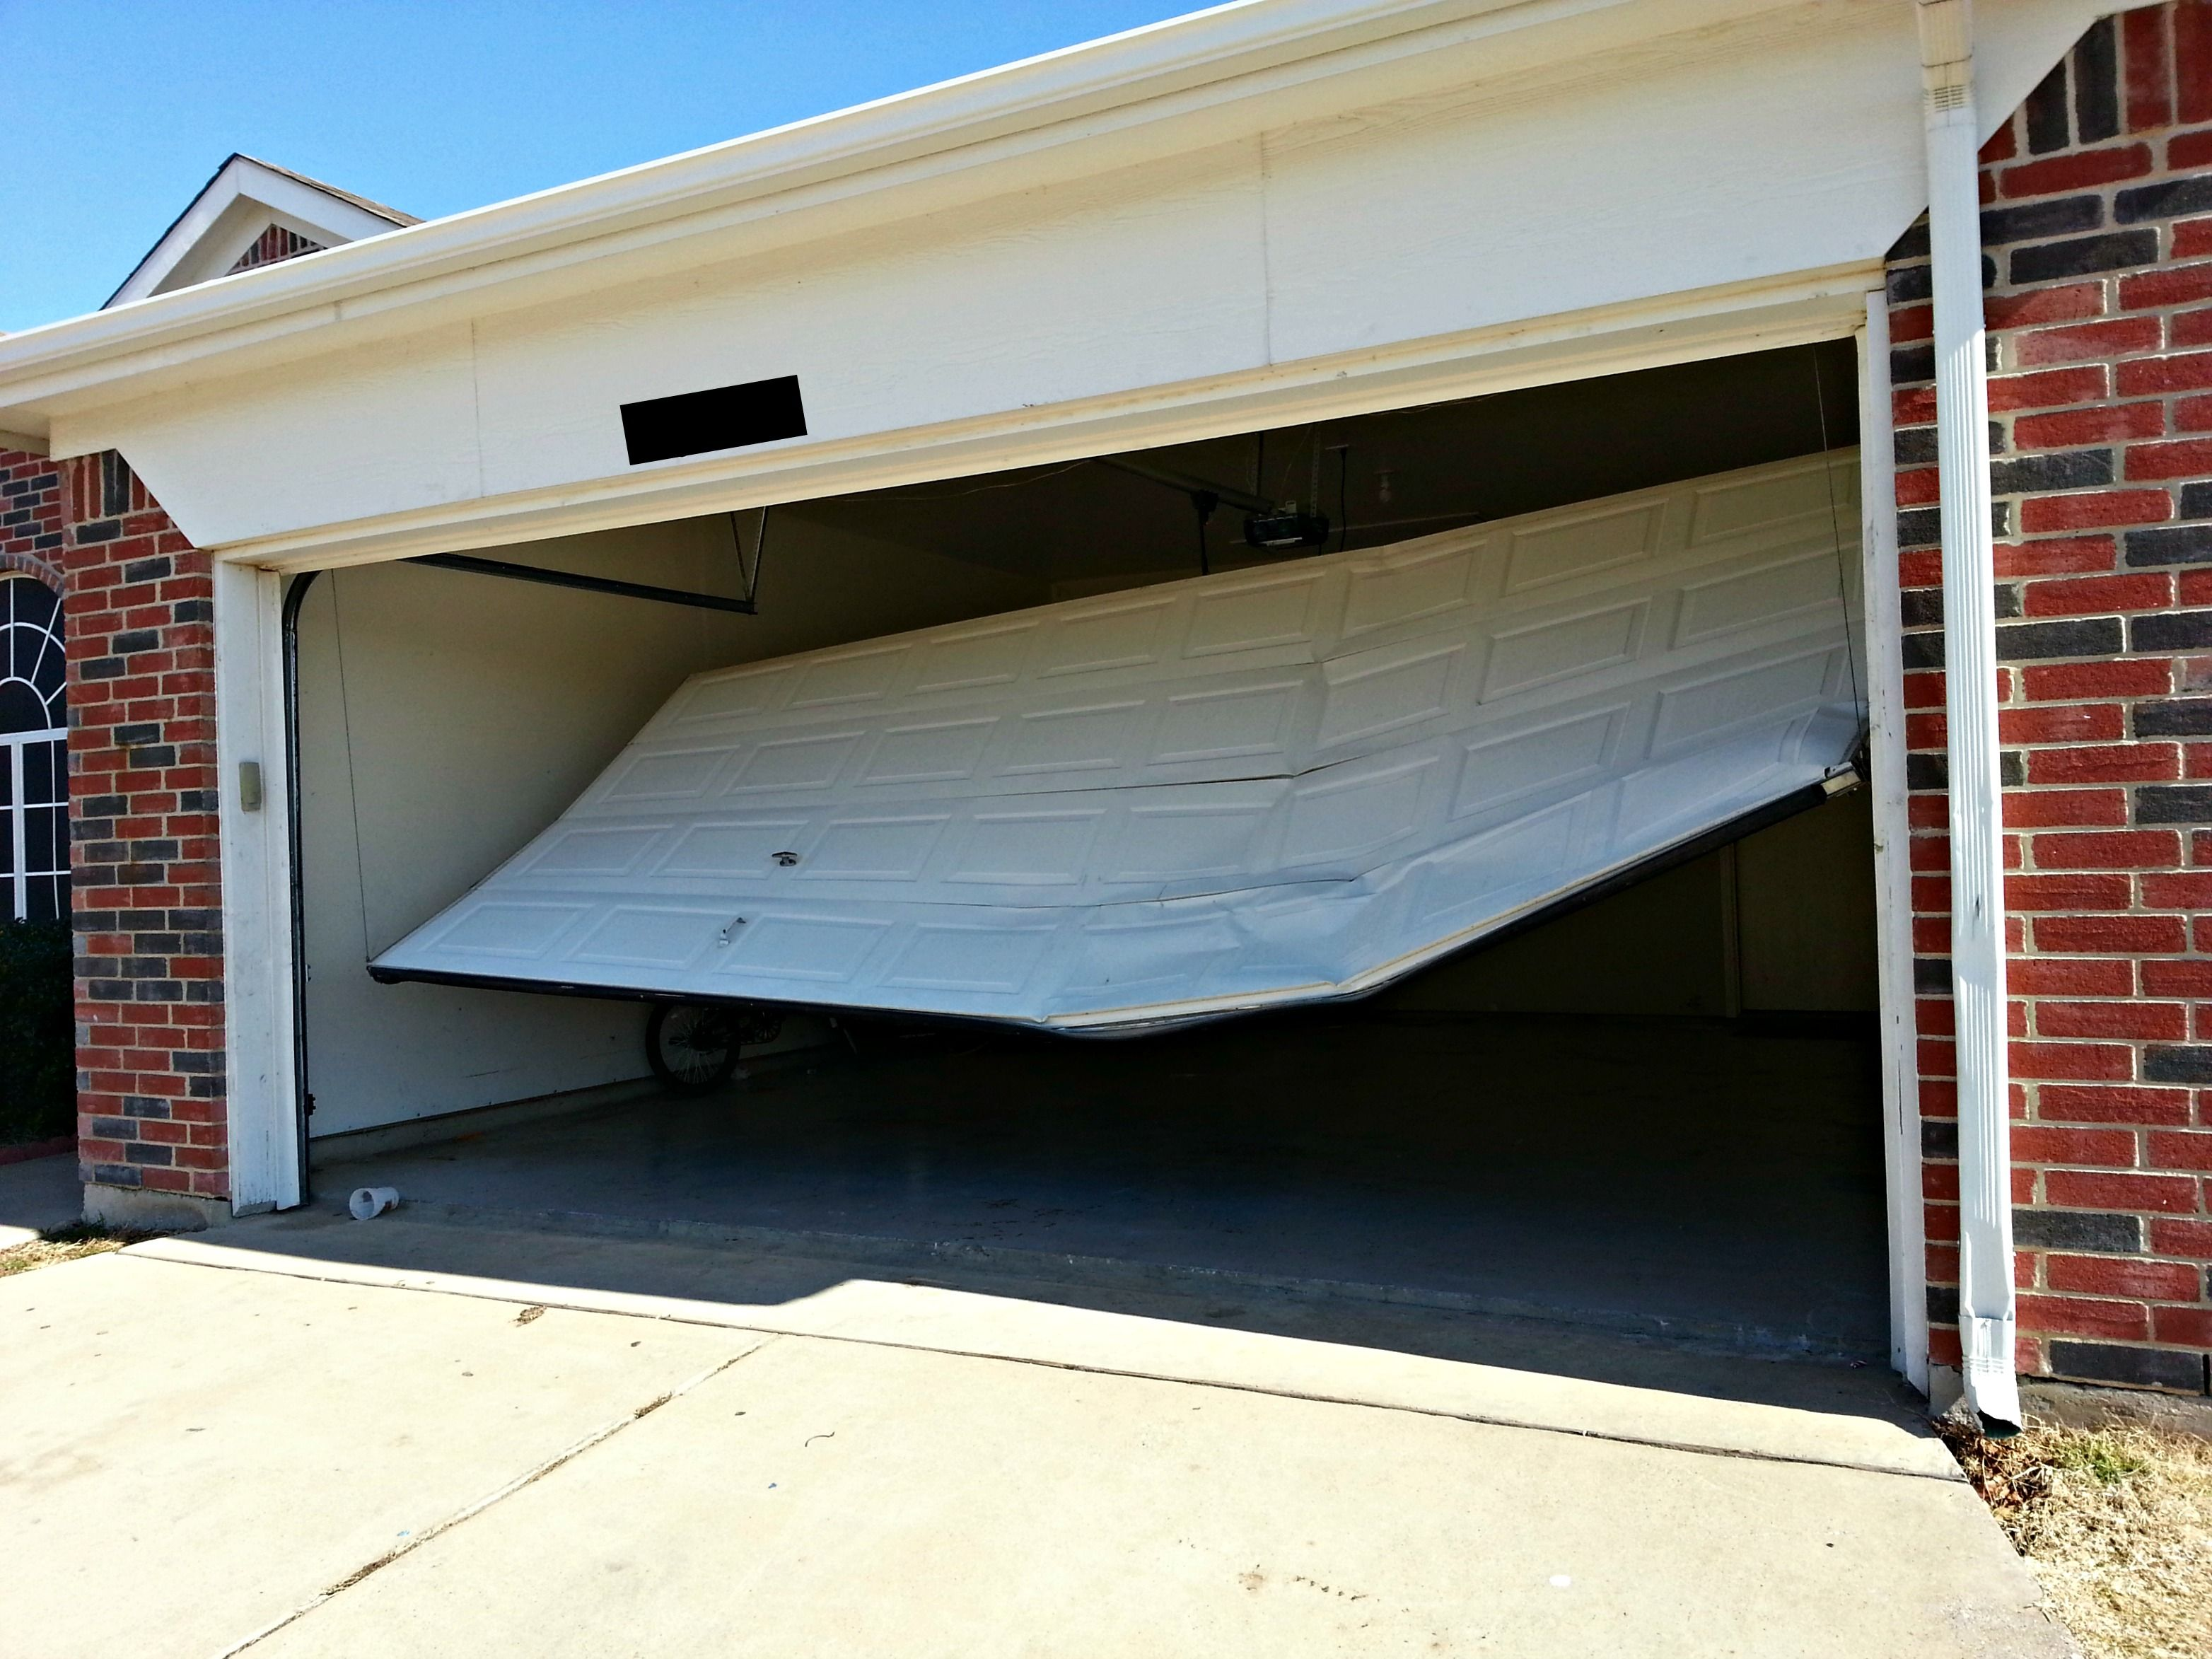 larson garage tiles storm screen sliding treatments lowes glass at atlanta frame repair albuquerque door smart handles